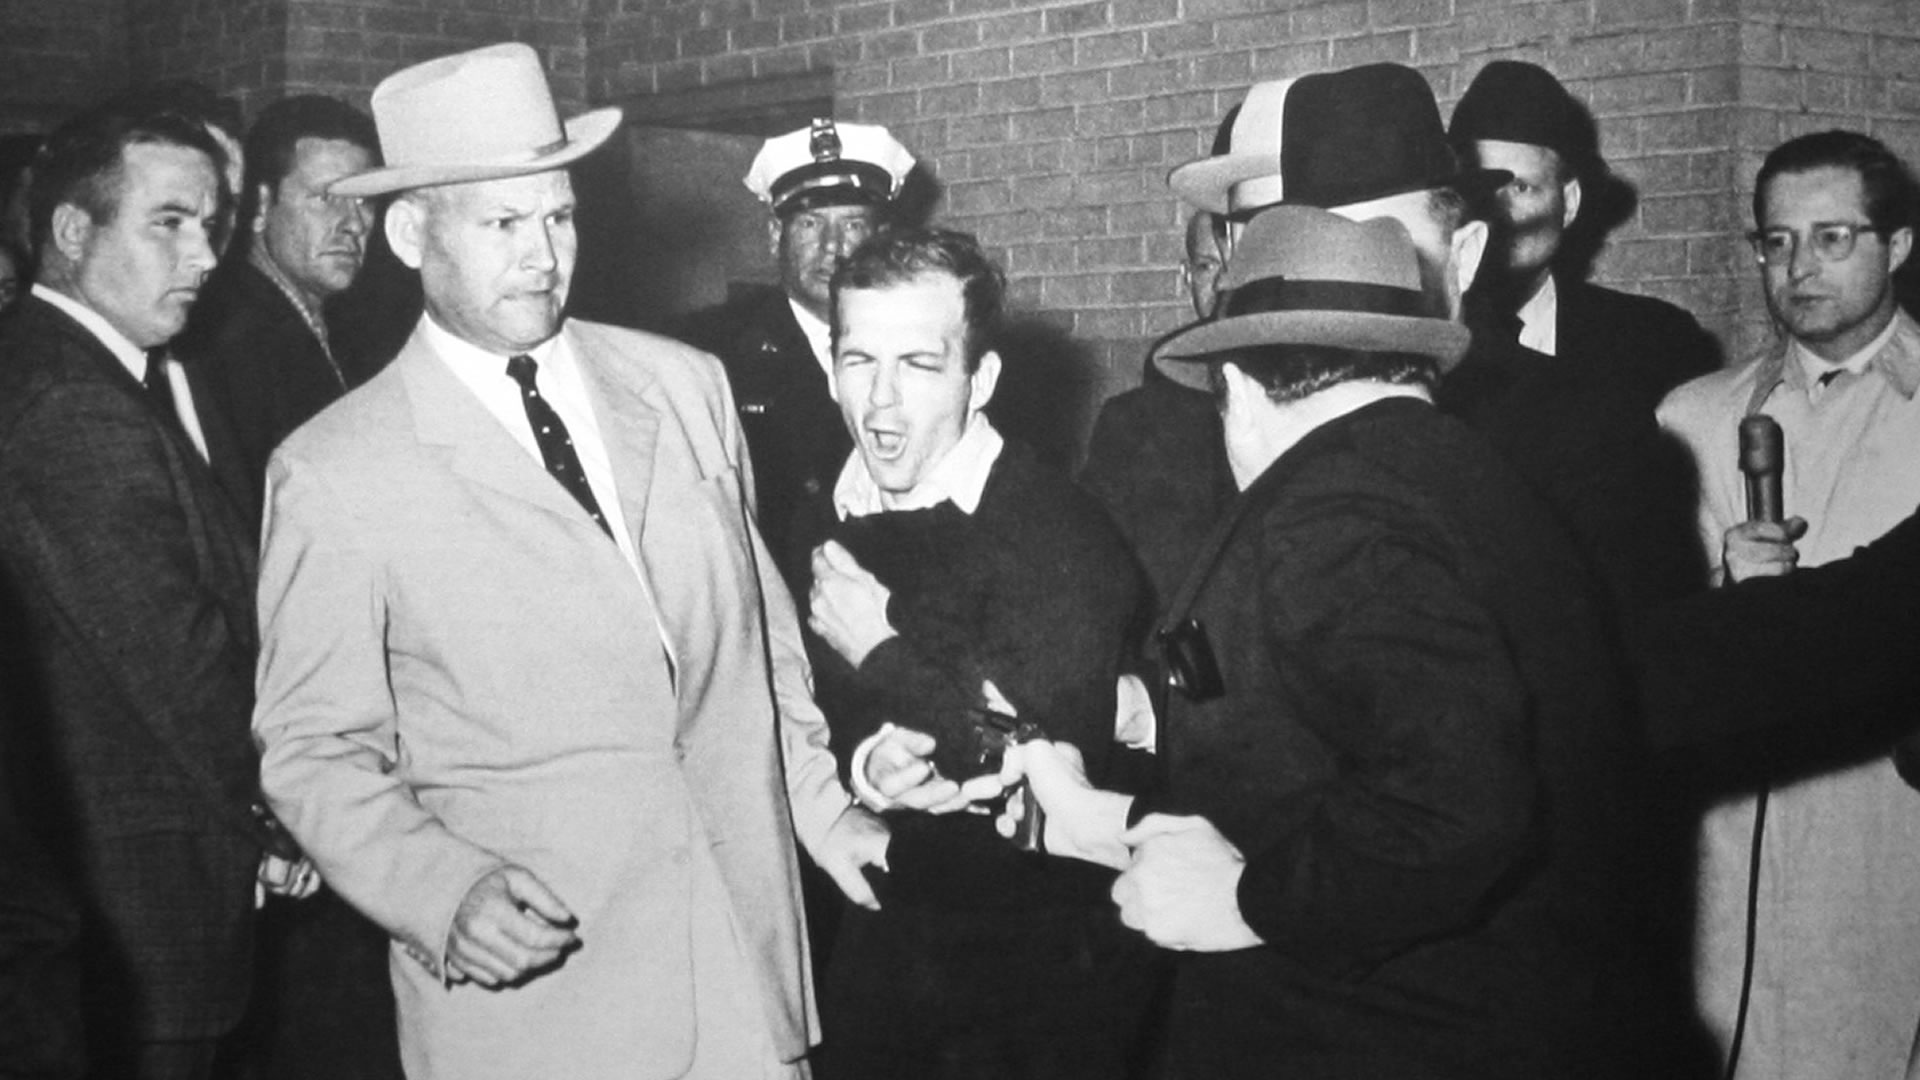 Jack Ruby shooting Oswald, who is being escorted by Dallas police. Detective Jim Leavelle is wearing the tan suit. Credits: Wikipedia